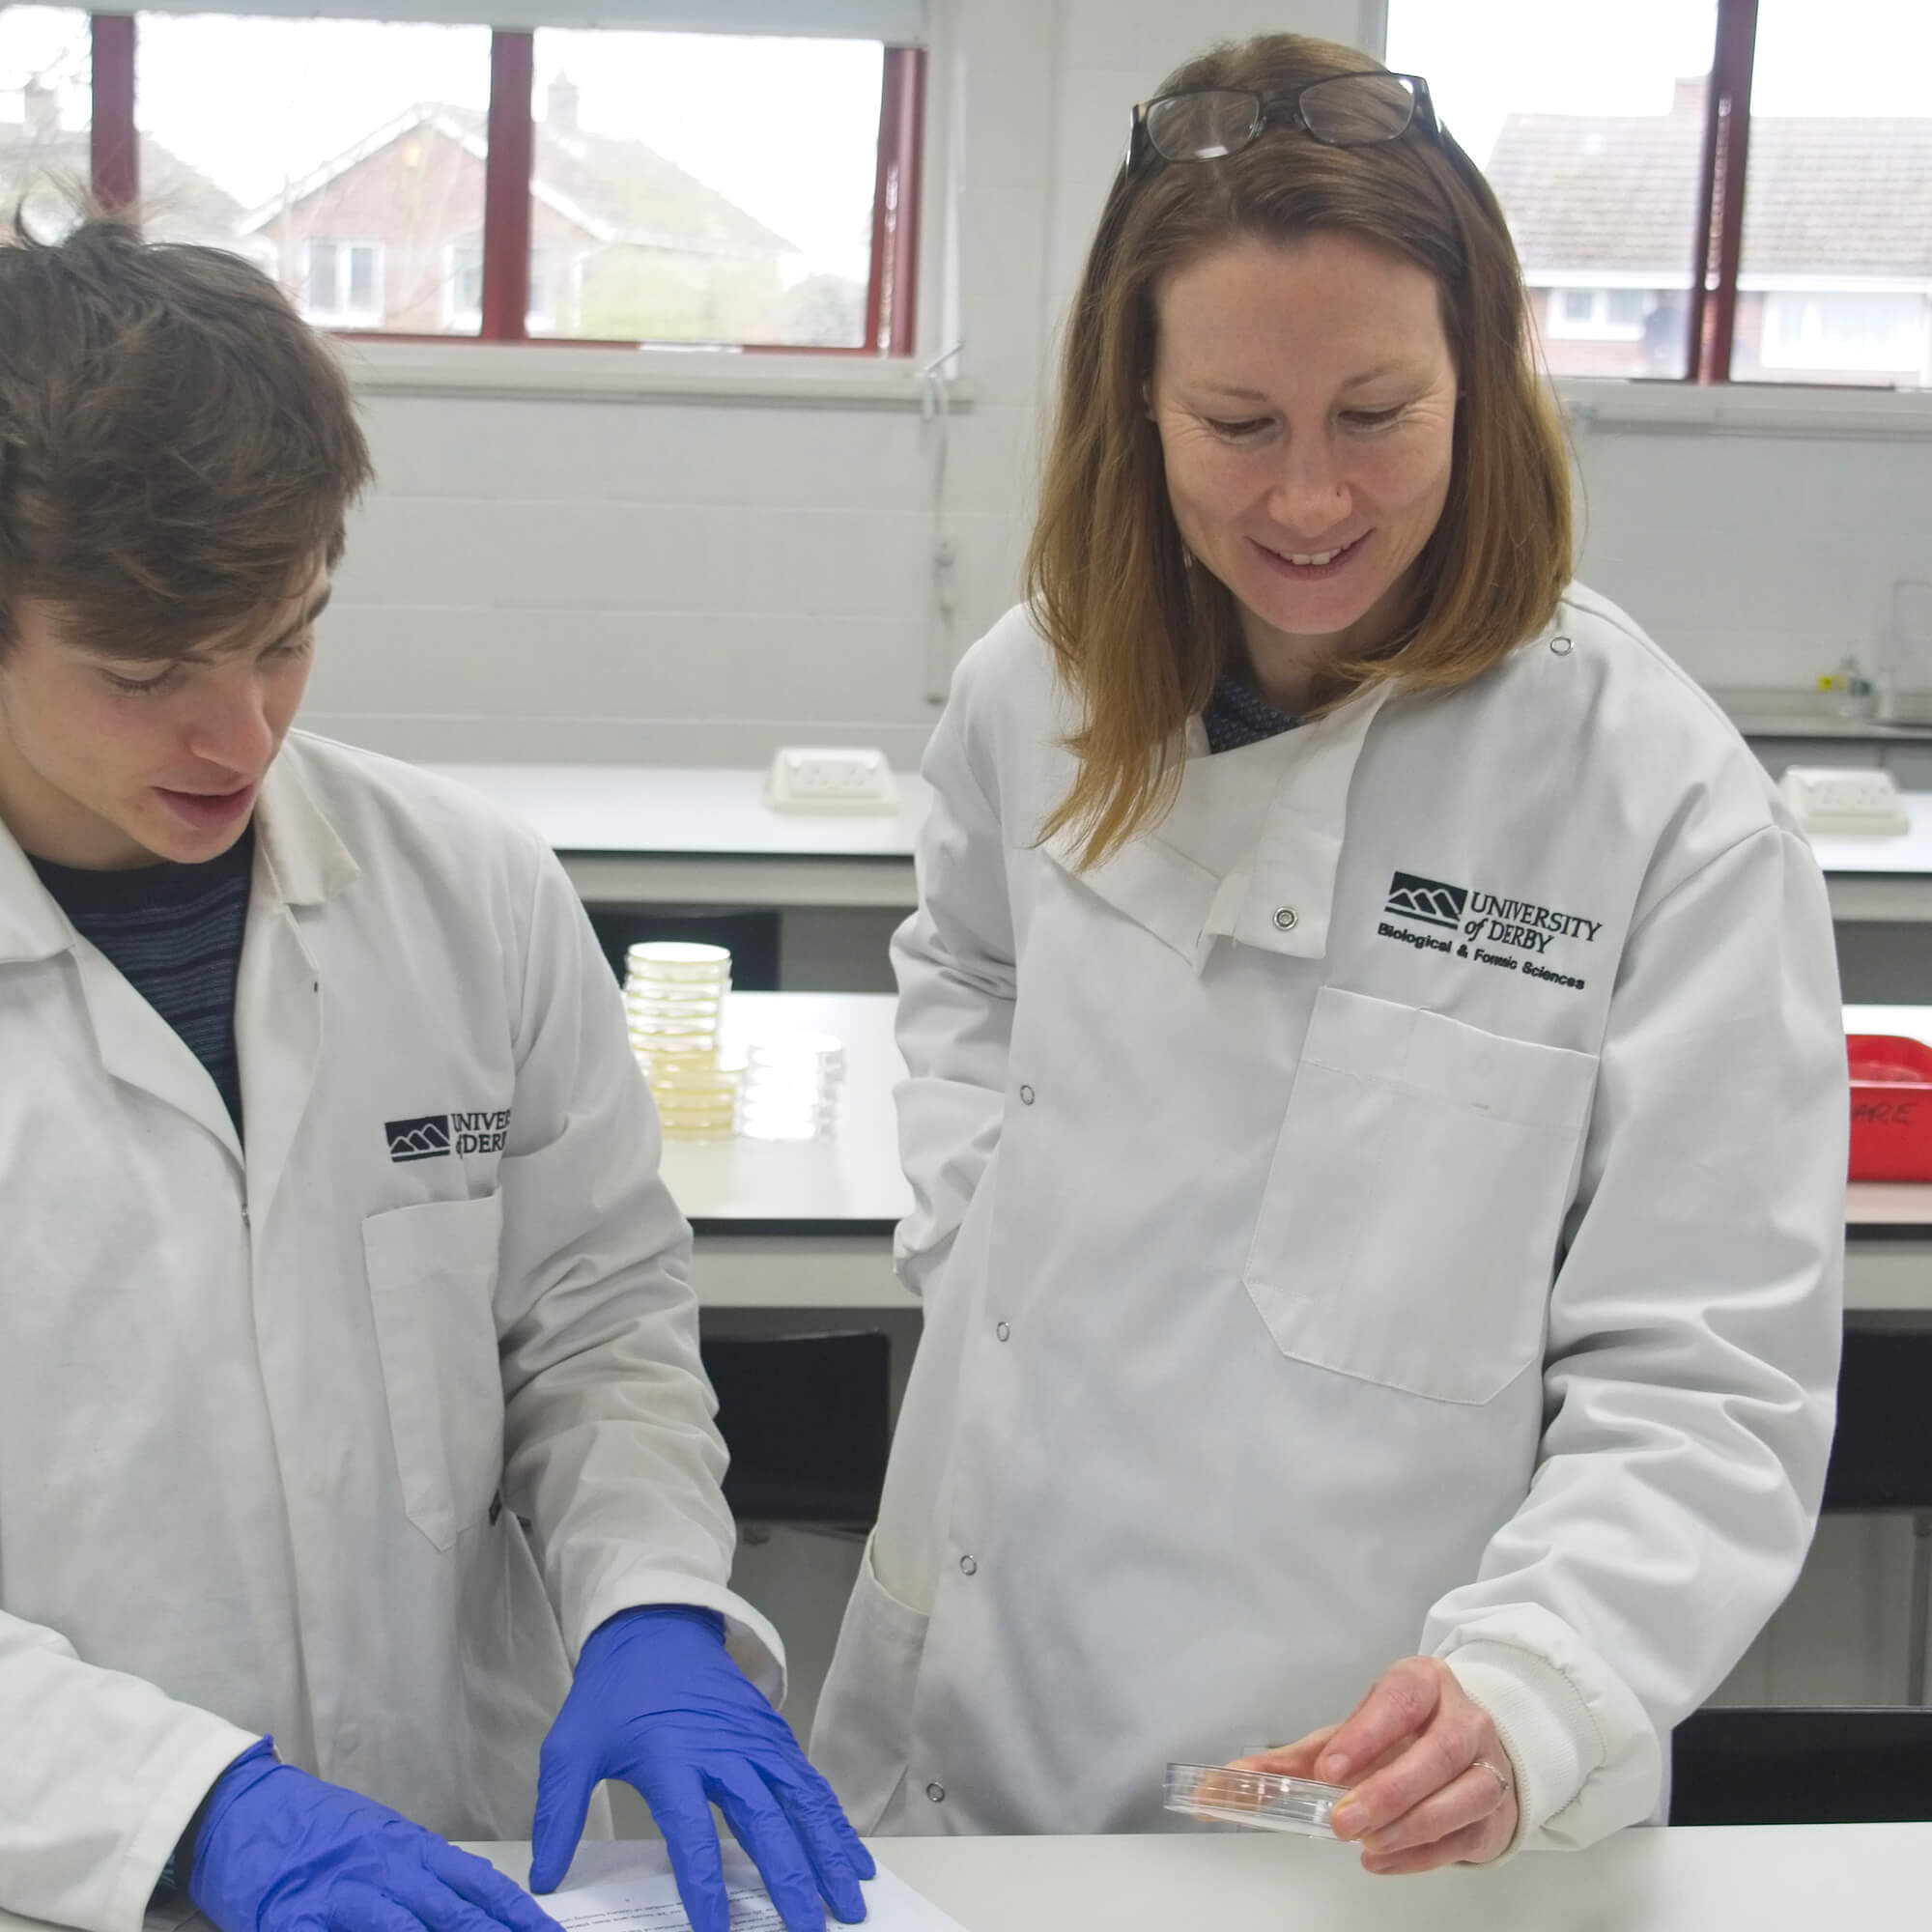 Kate teaching a student in one of the forensic labs at the University of Derby.